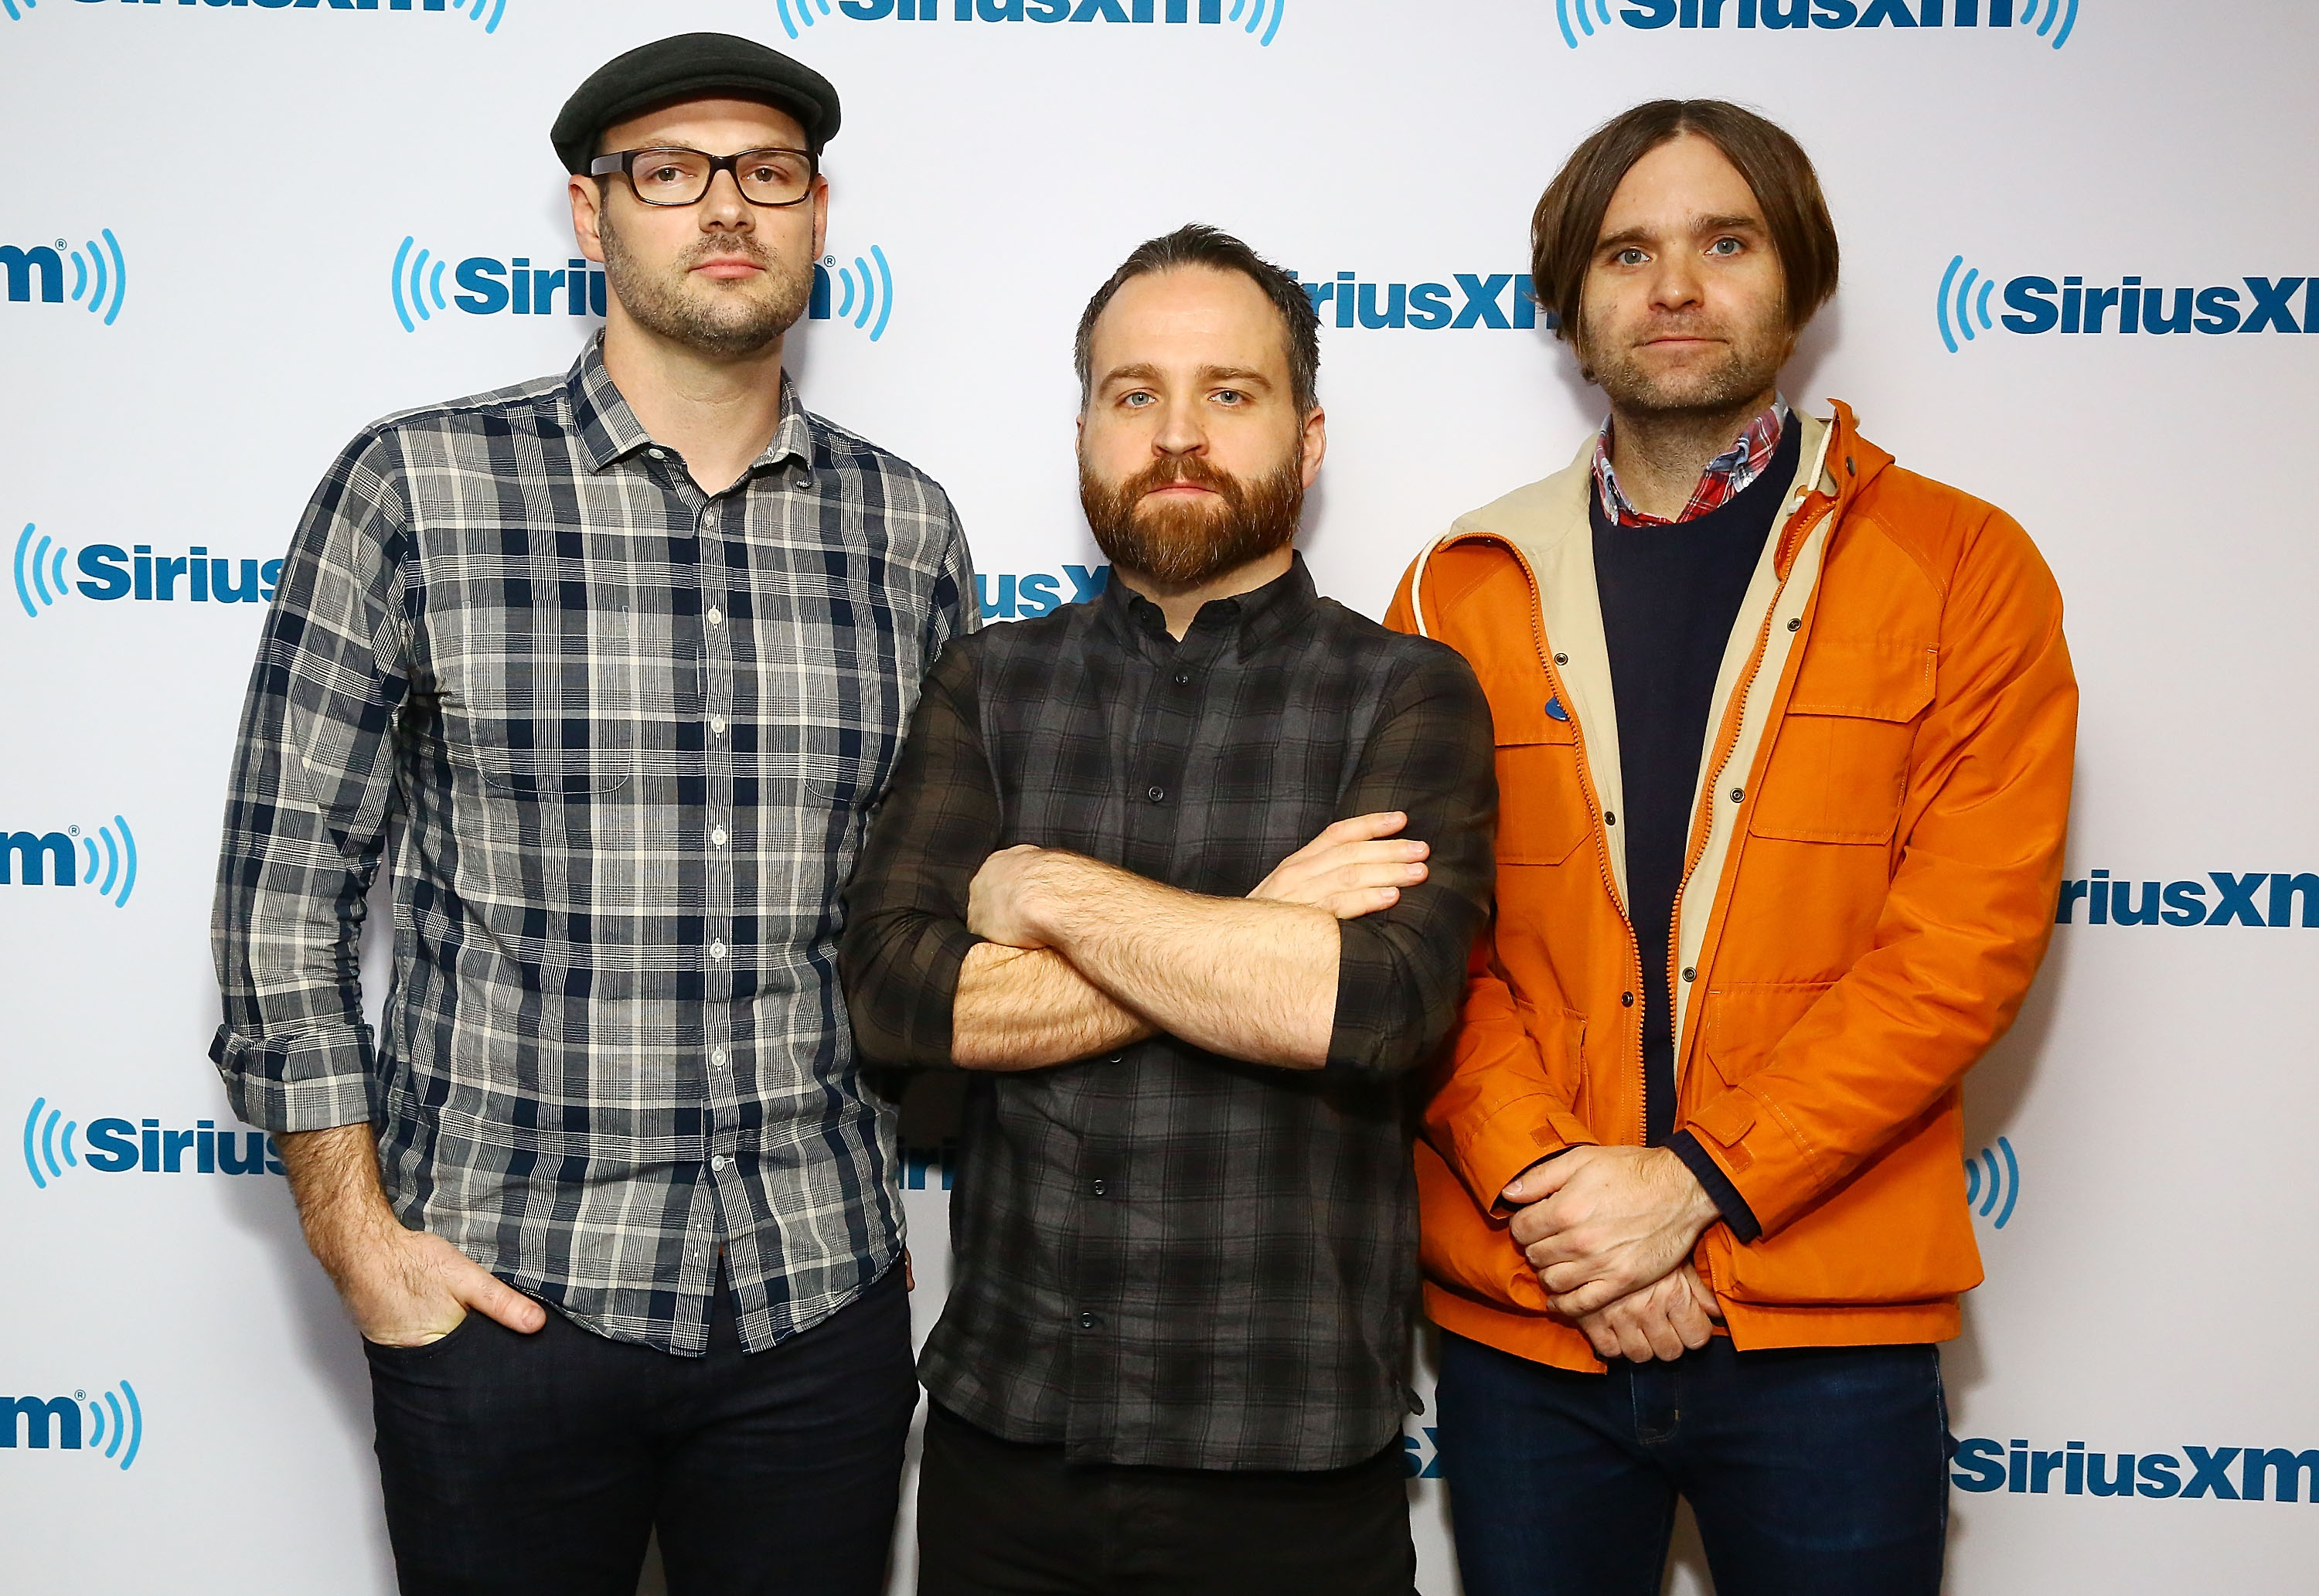 From left: Jason McGerr, Nick Harmer and Ben Gibbard of Death Cab For Cutie visit the SiriusXM Studios in New York City on jan. 28, 2015.